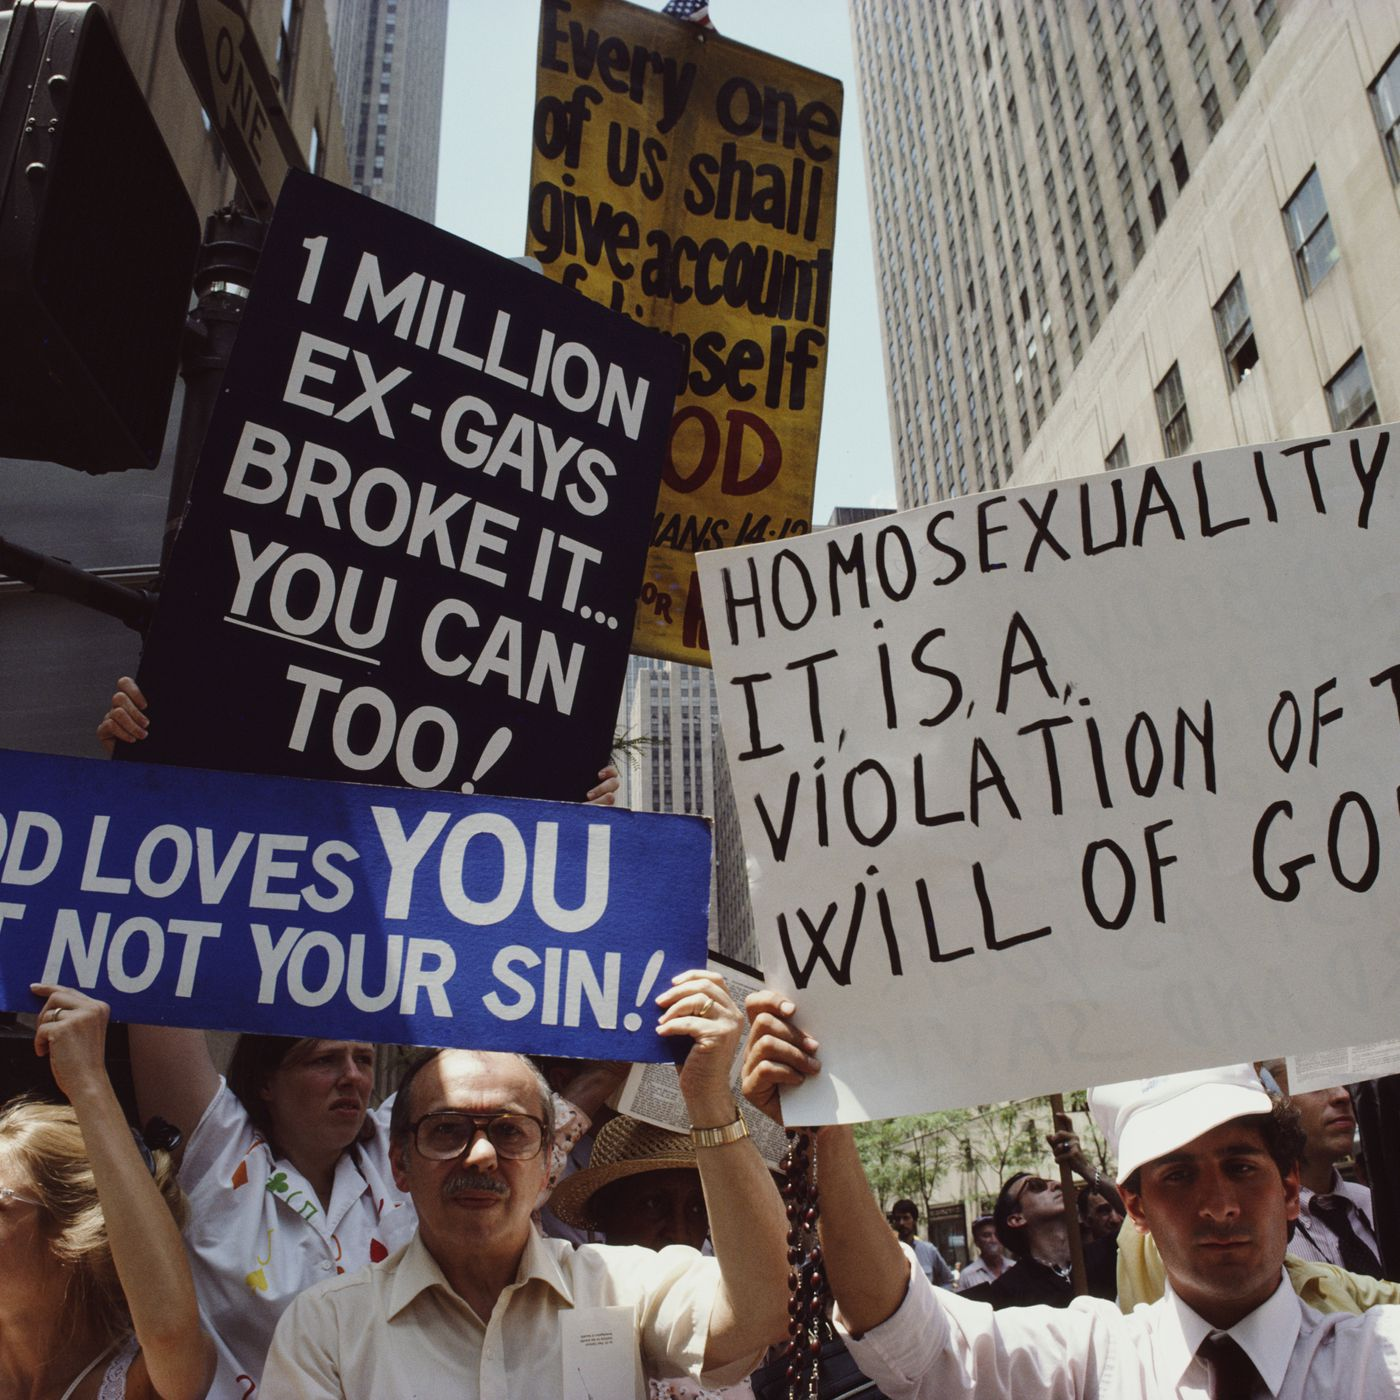 LGBTQ religion activist: it's time to talk about America's faith-based  homophobia problem - Vox